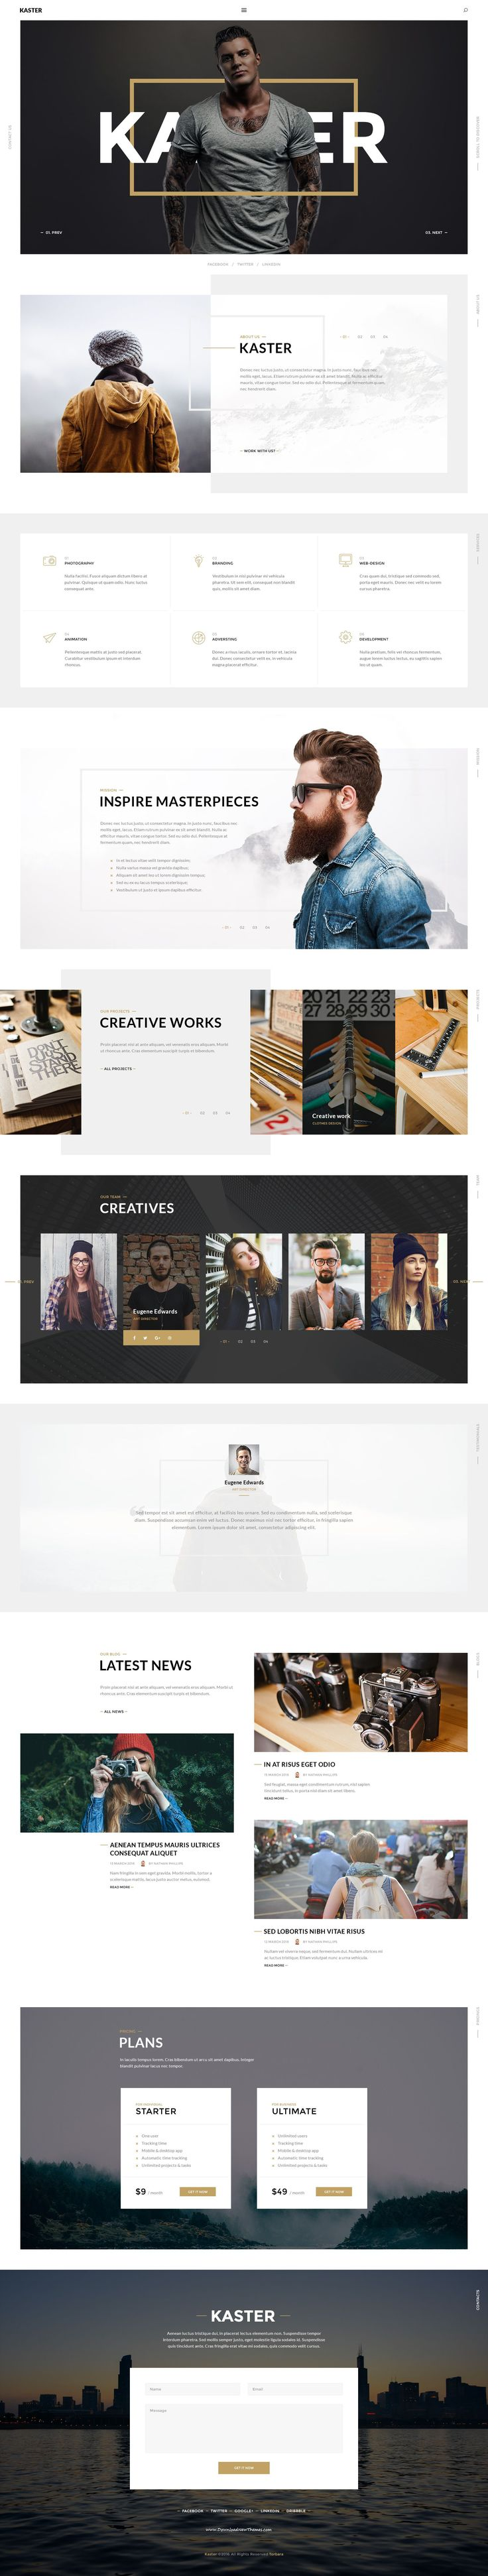 Kaster is a multipages PSD template for creative agency, design studio…